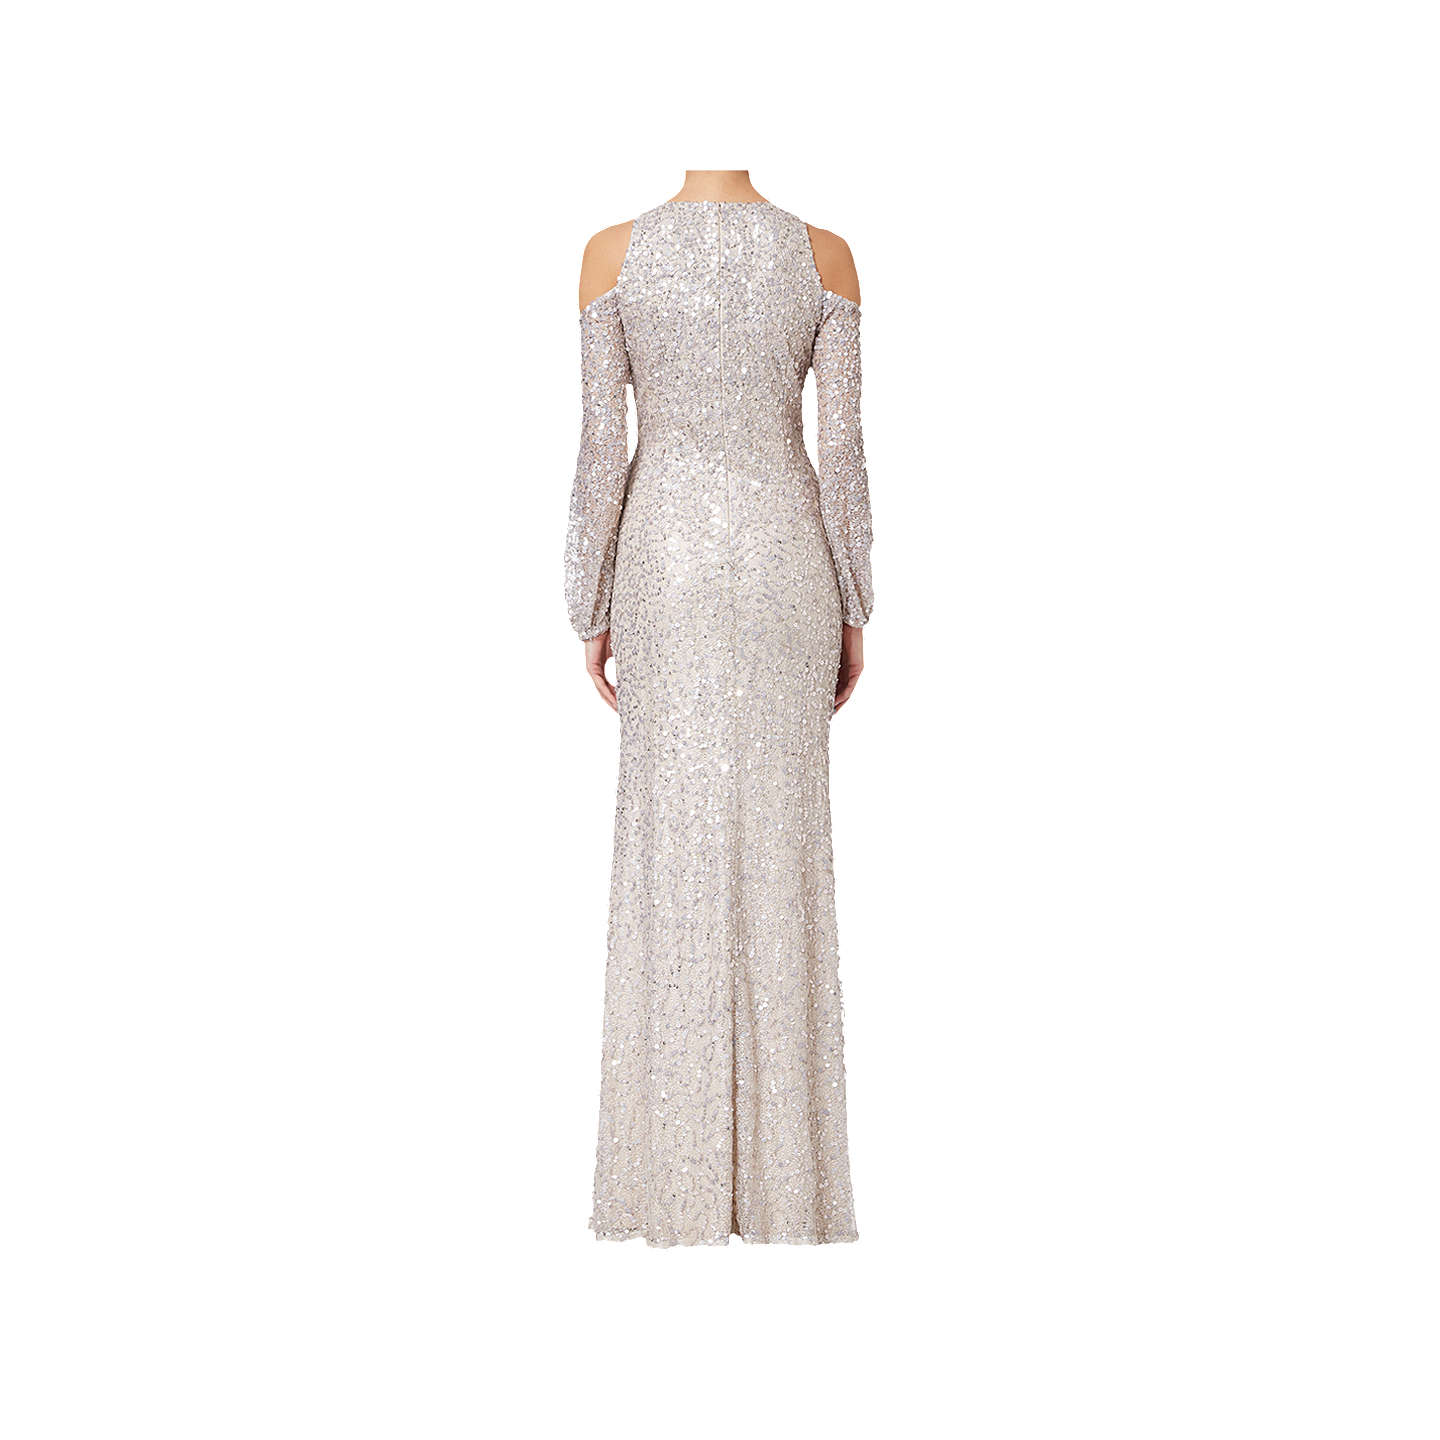 BuyAdrianna Papell Plus Size Beaded Long Dress, Nude, 18 Online at johnlewis.com